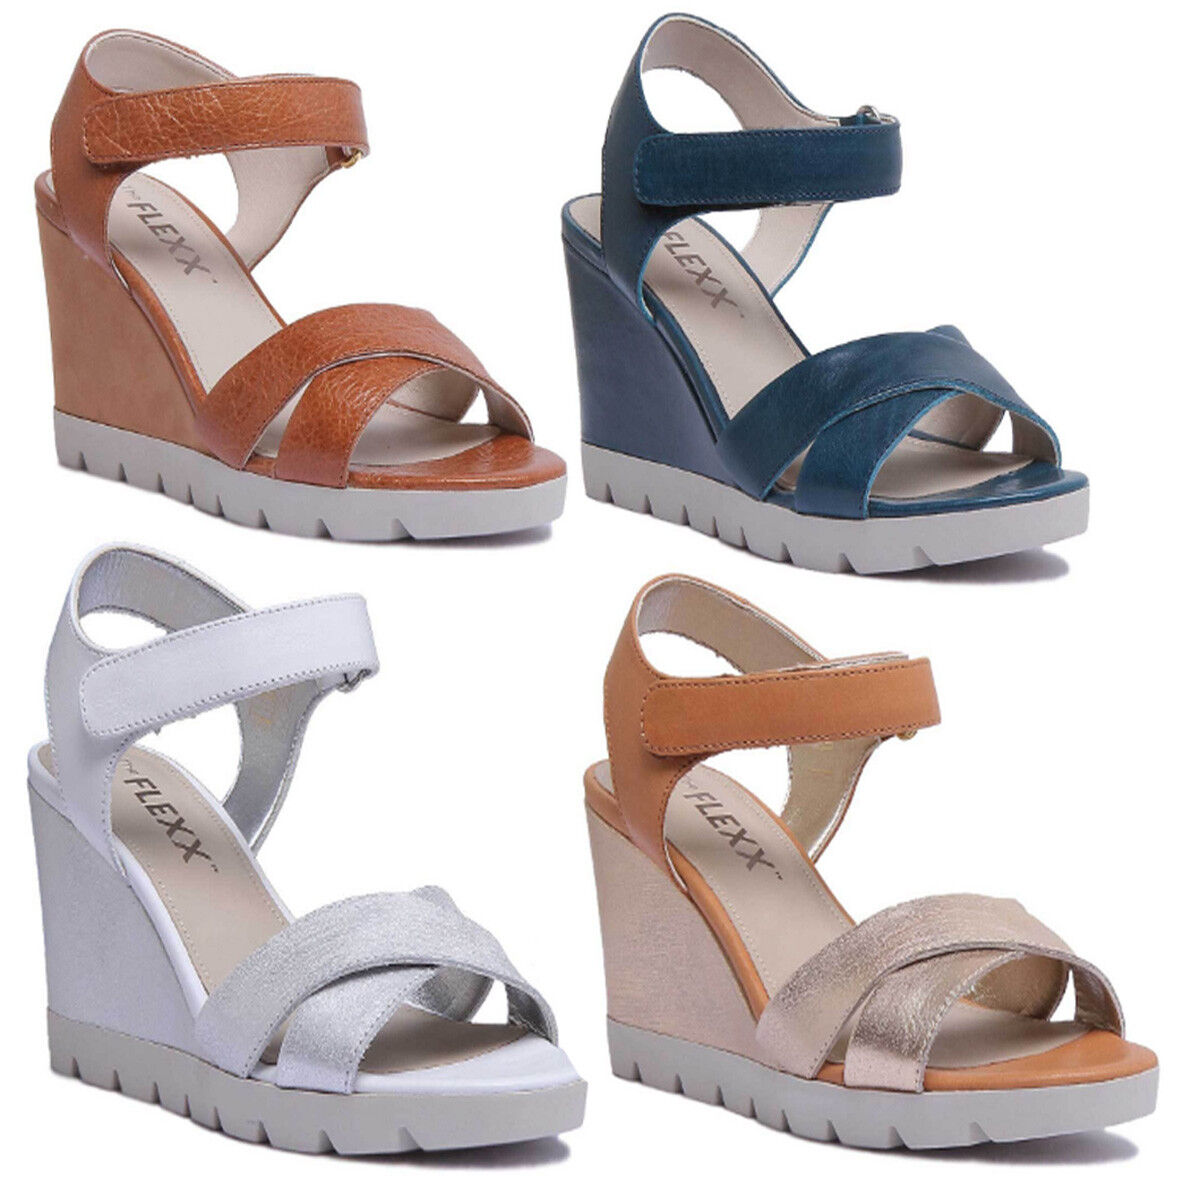 The Flexx Lot Off Women Leather Strappy Wedge Sandals In Silver Size UK 3 - 8